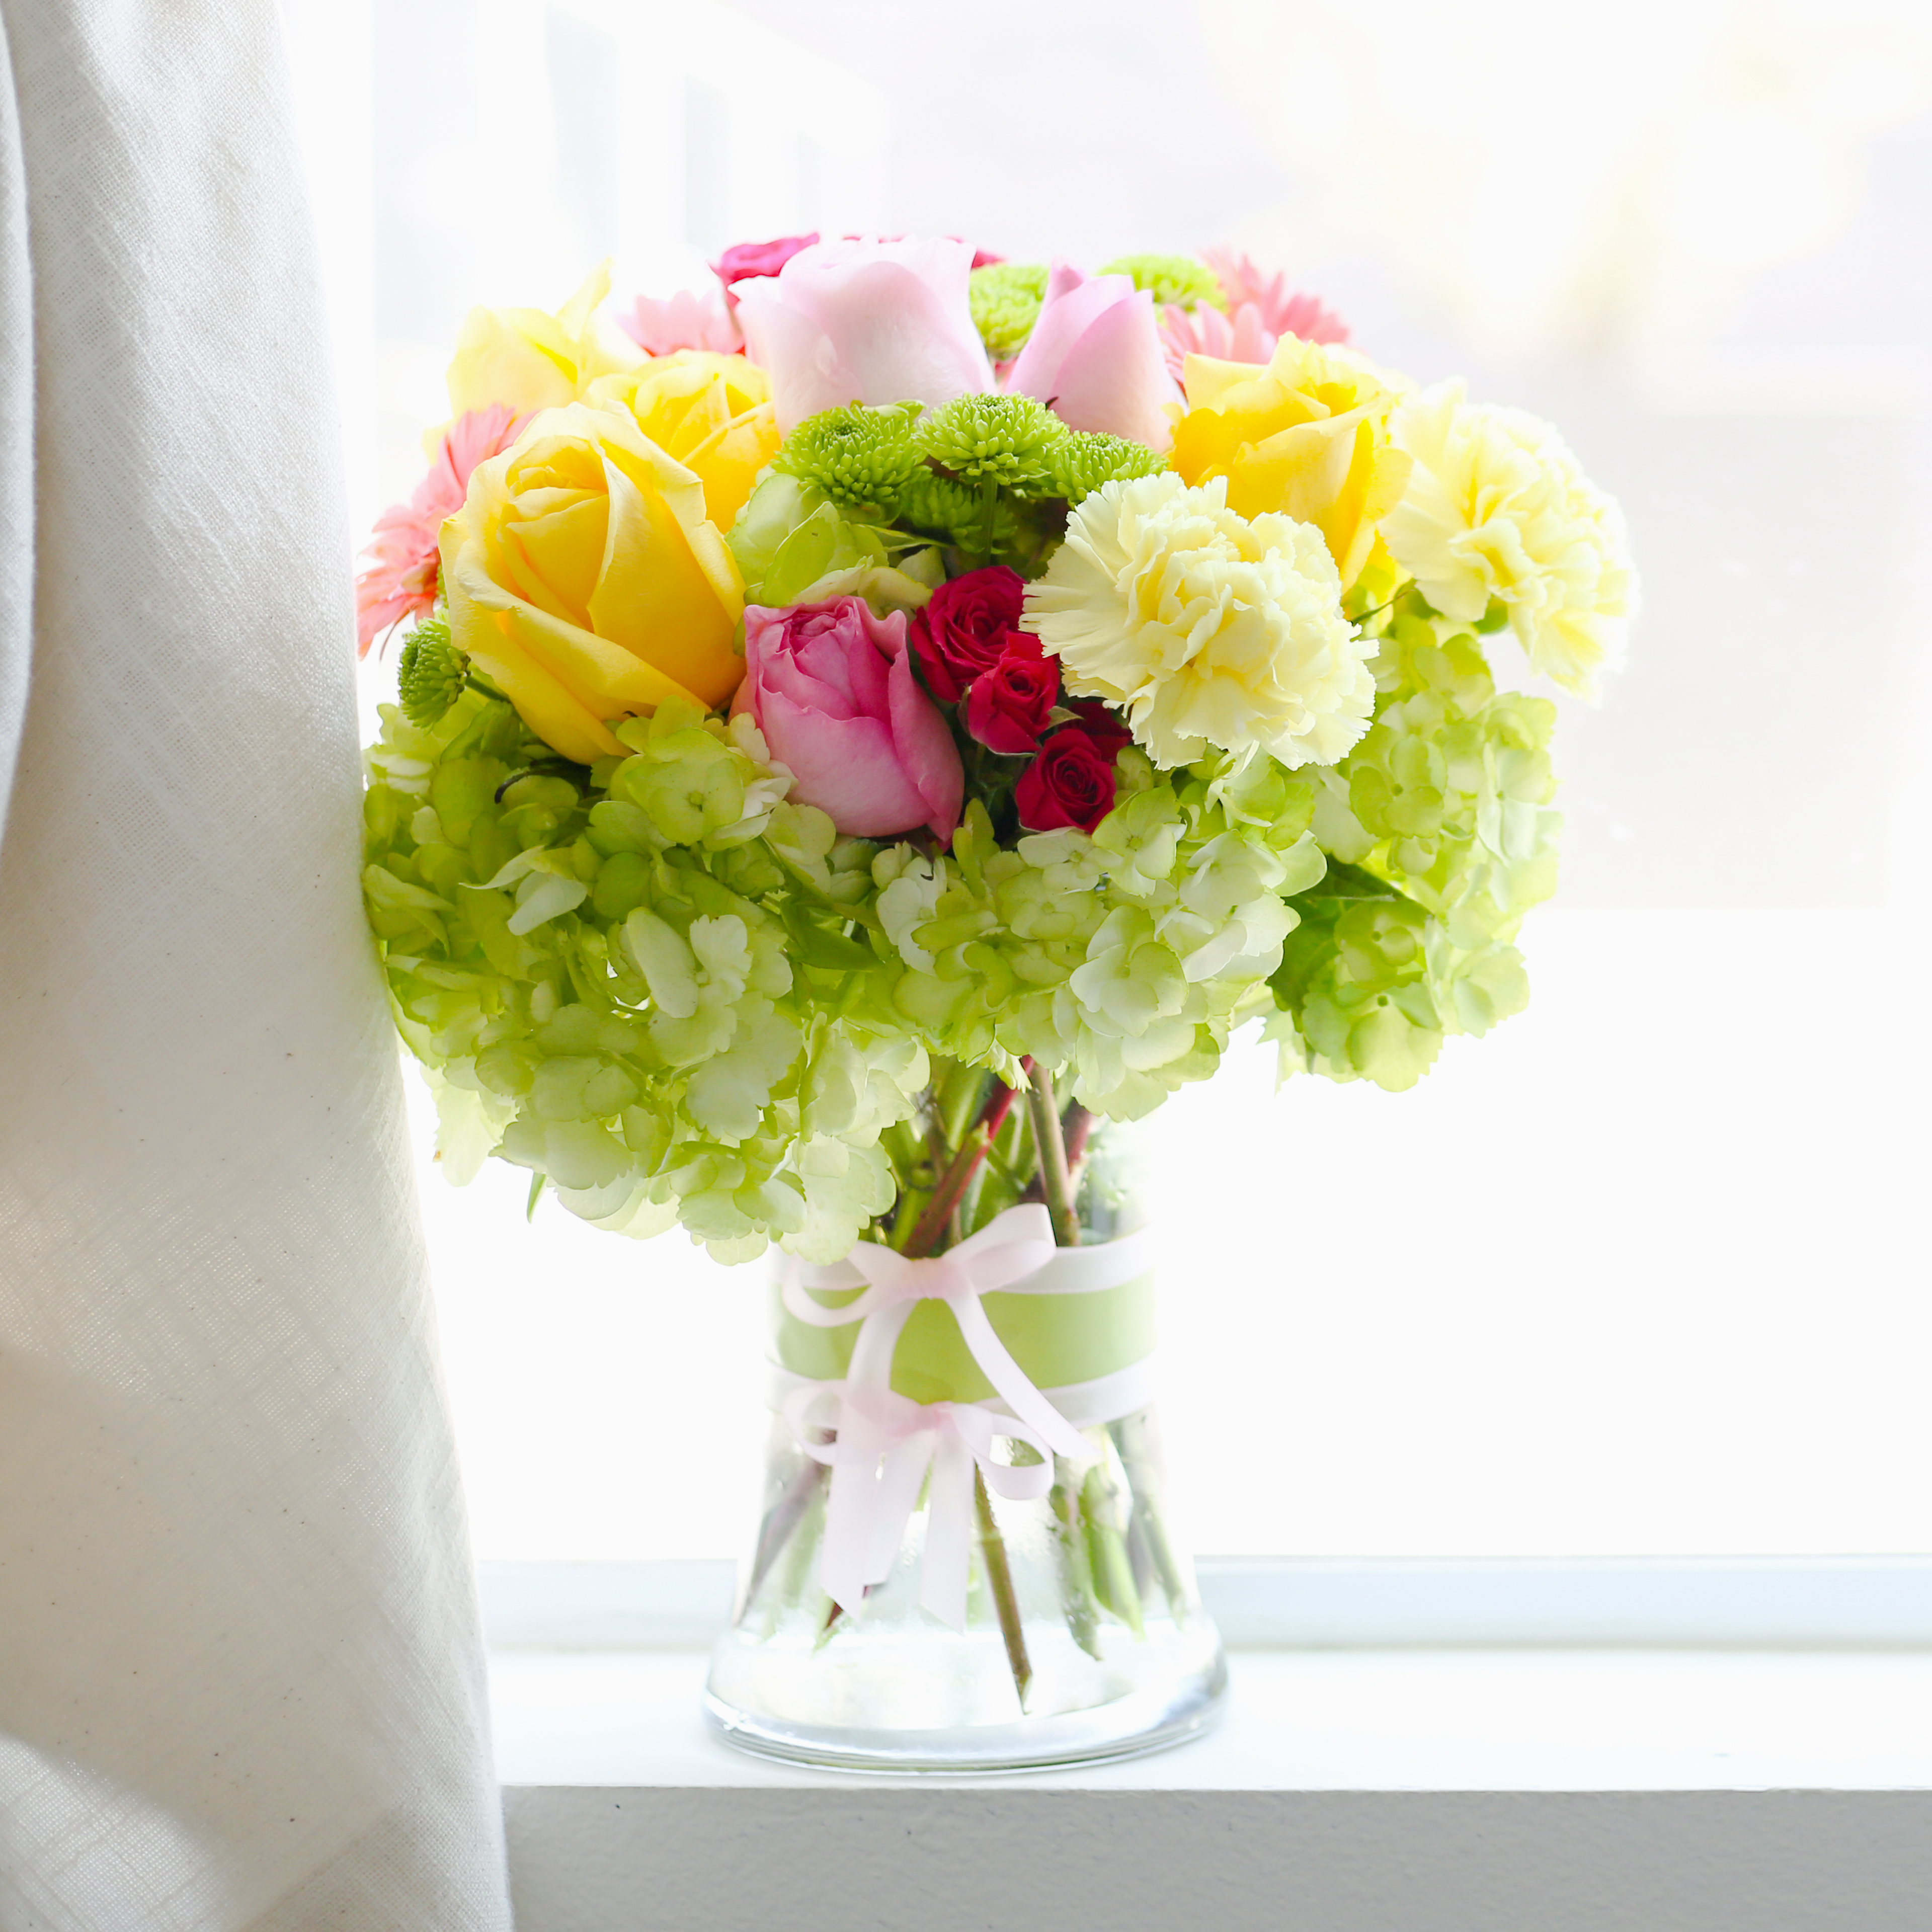 hyrdrangeas, roses, carnations and more in clear vase in the window